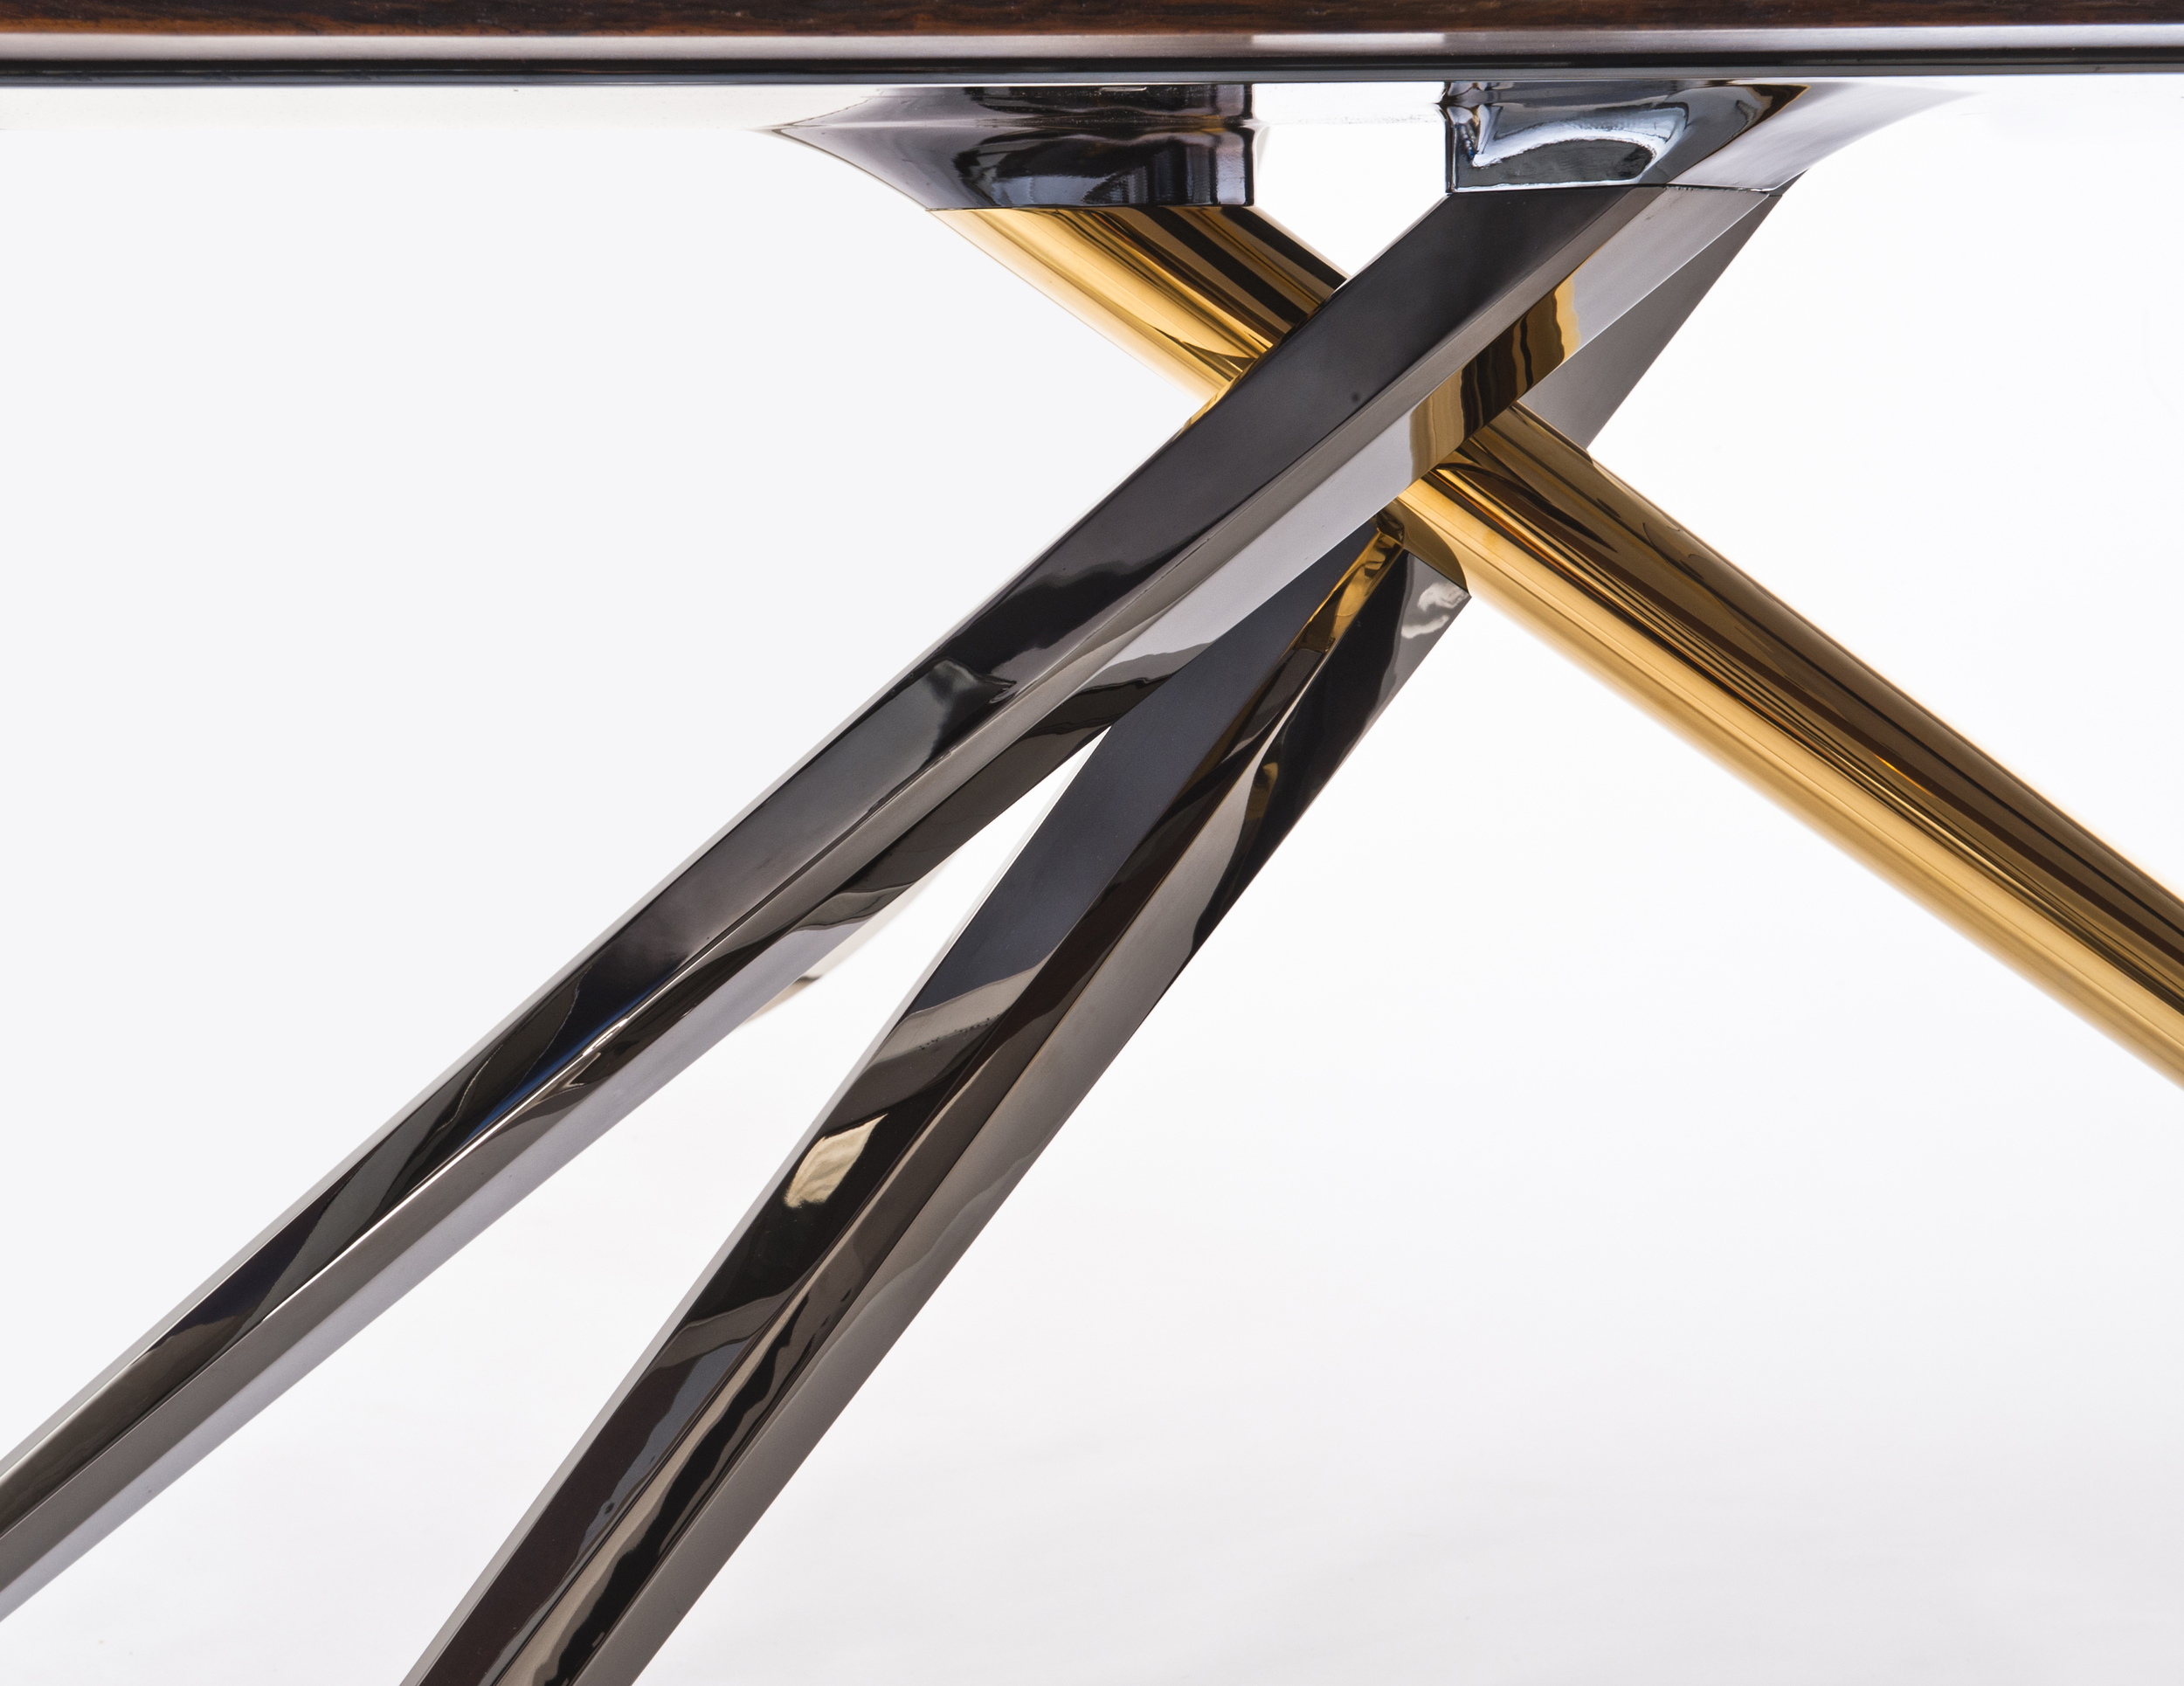 Aluminum bar stock legs, plated in dark  chrome and 24k gold.